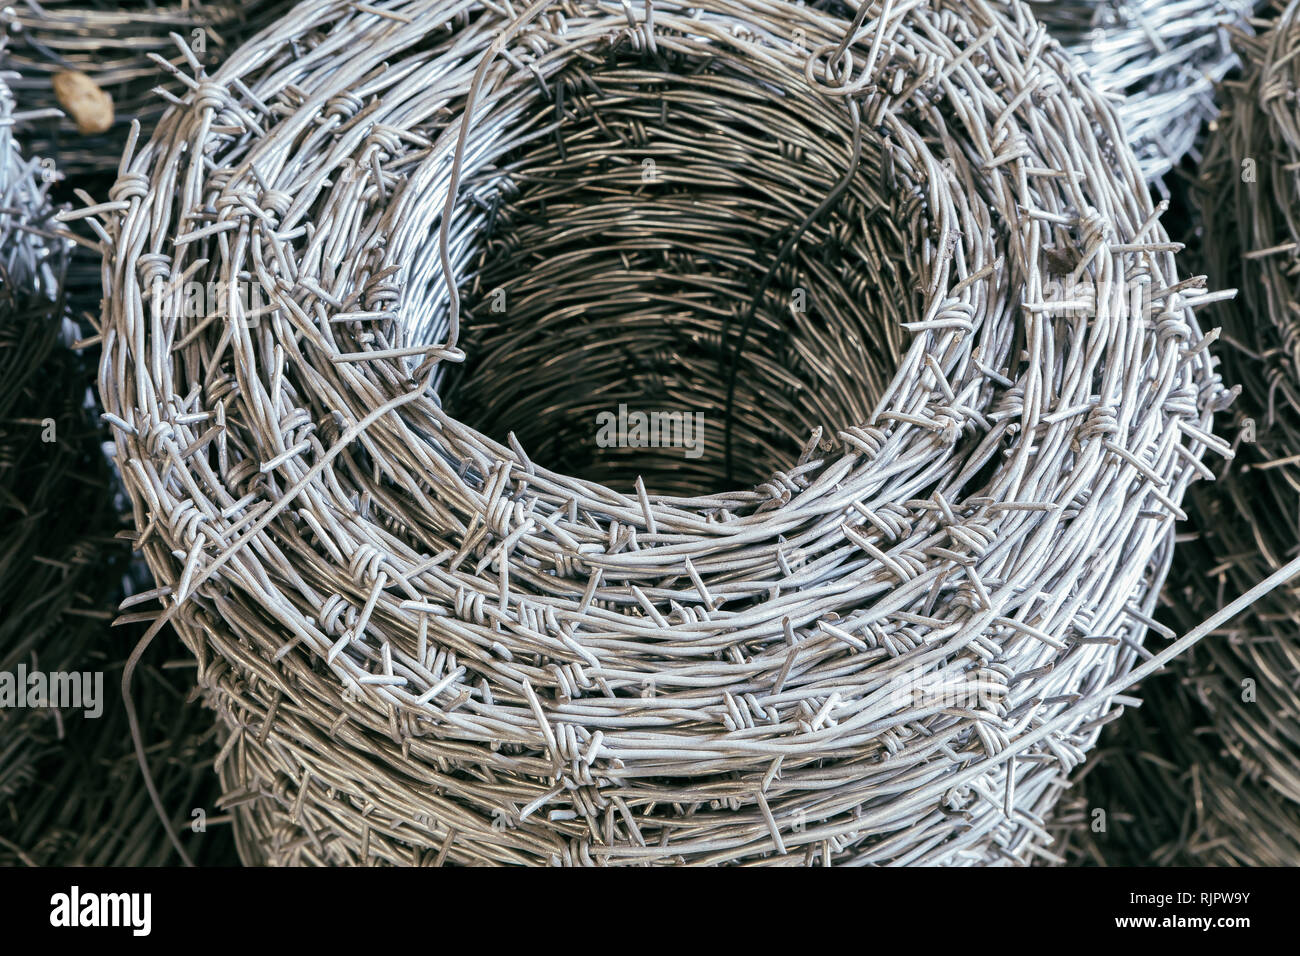 Barbed wire fence safety guard products - Stock Image